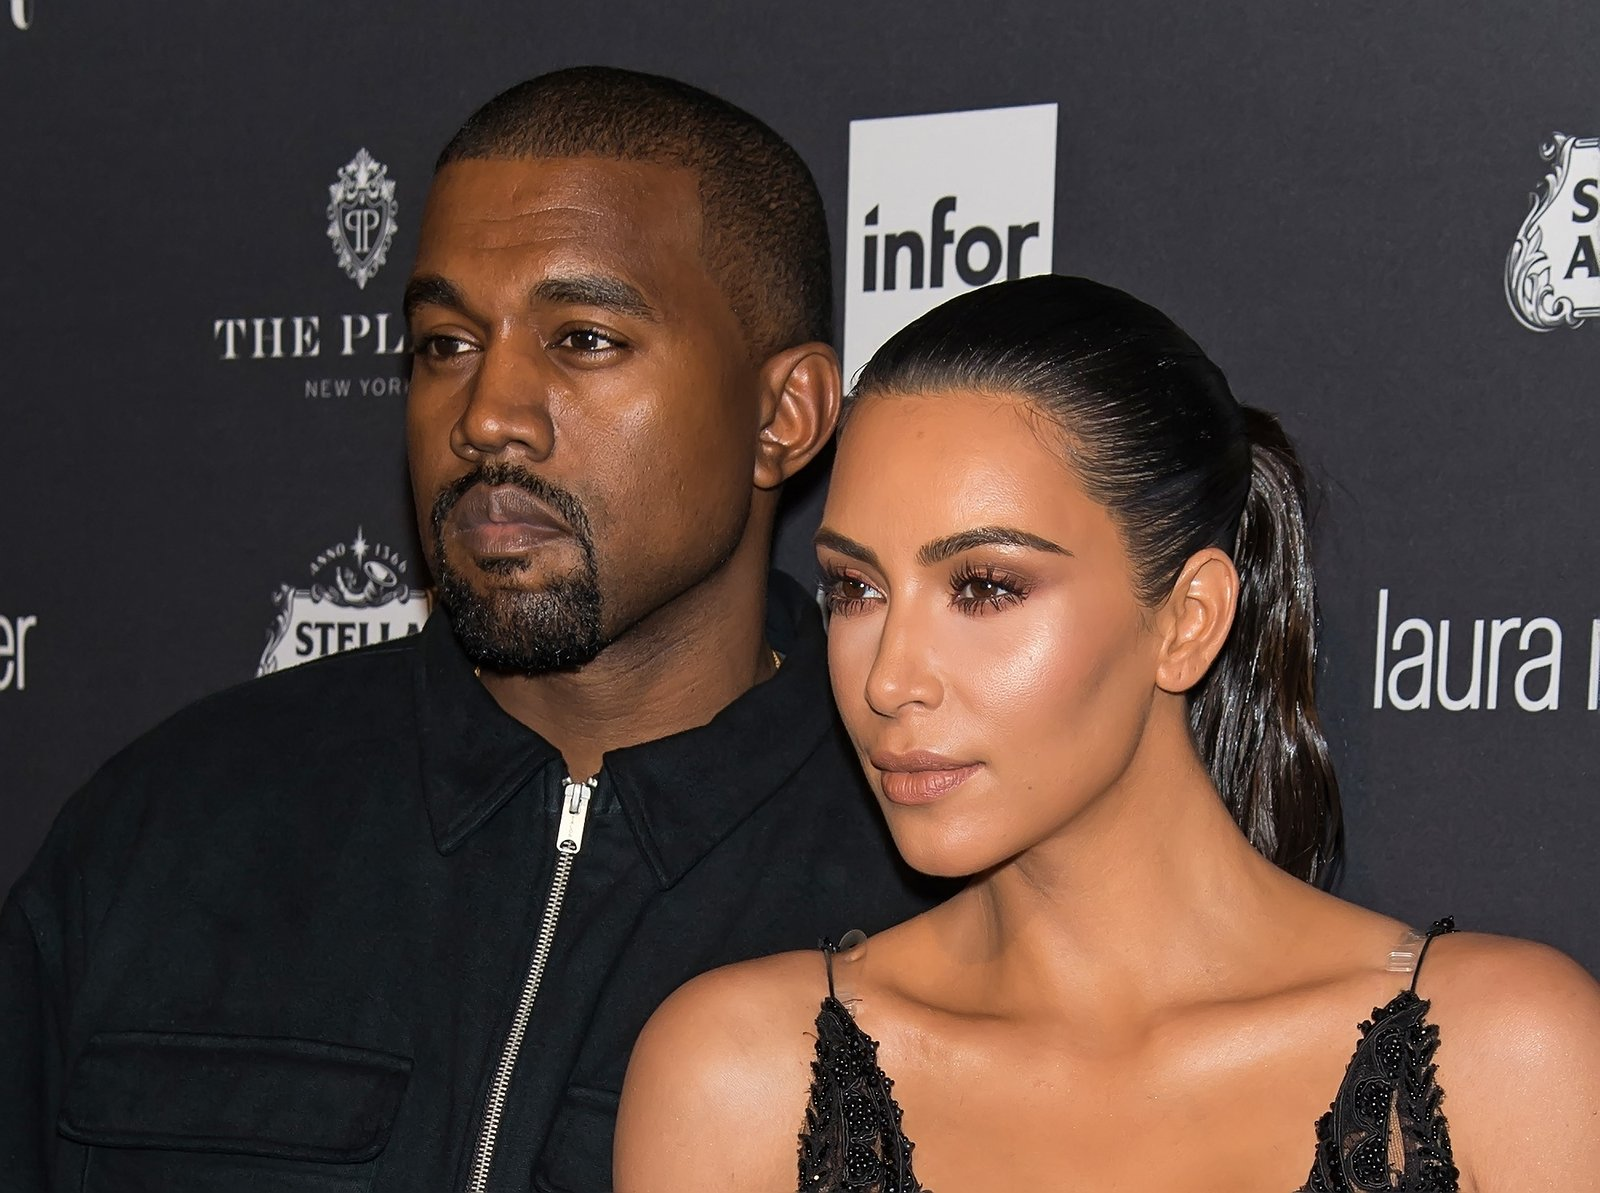 Kim Kardashian reveals her new daughter's name is Chicago